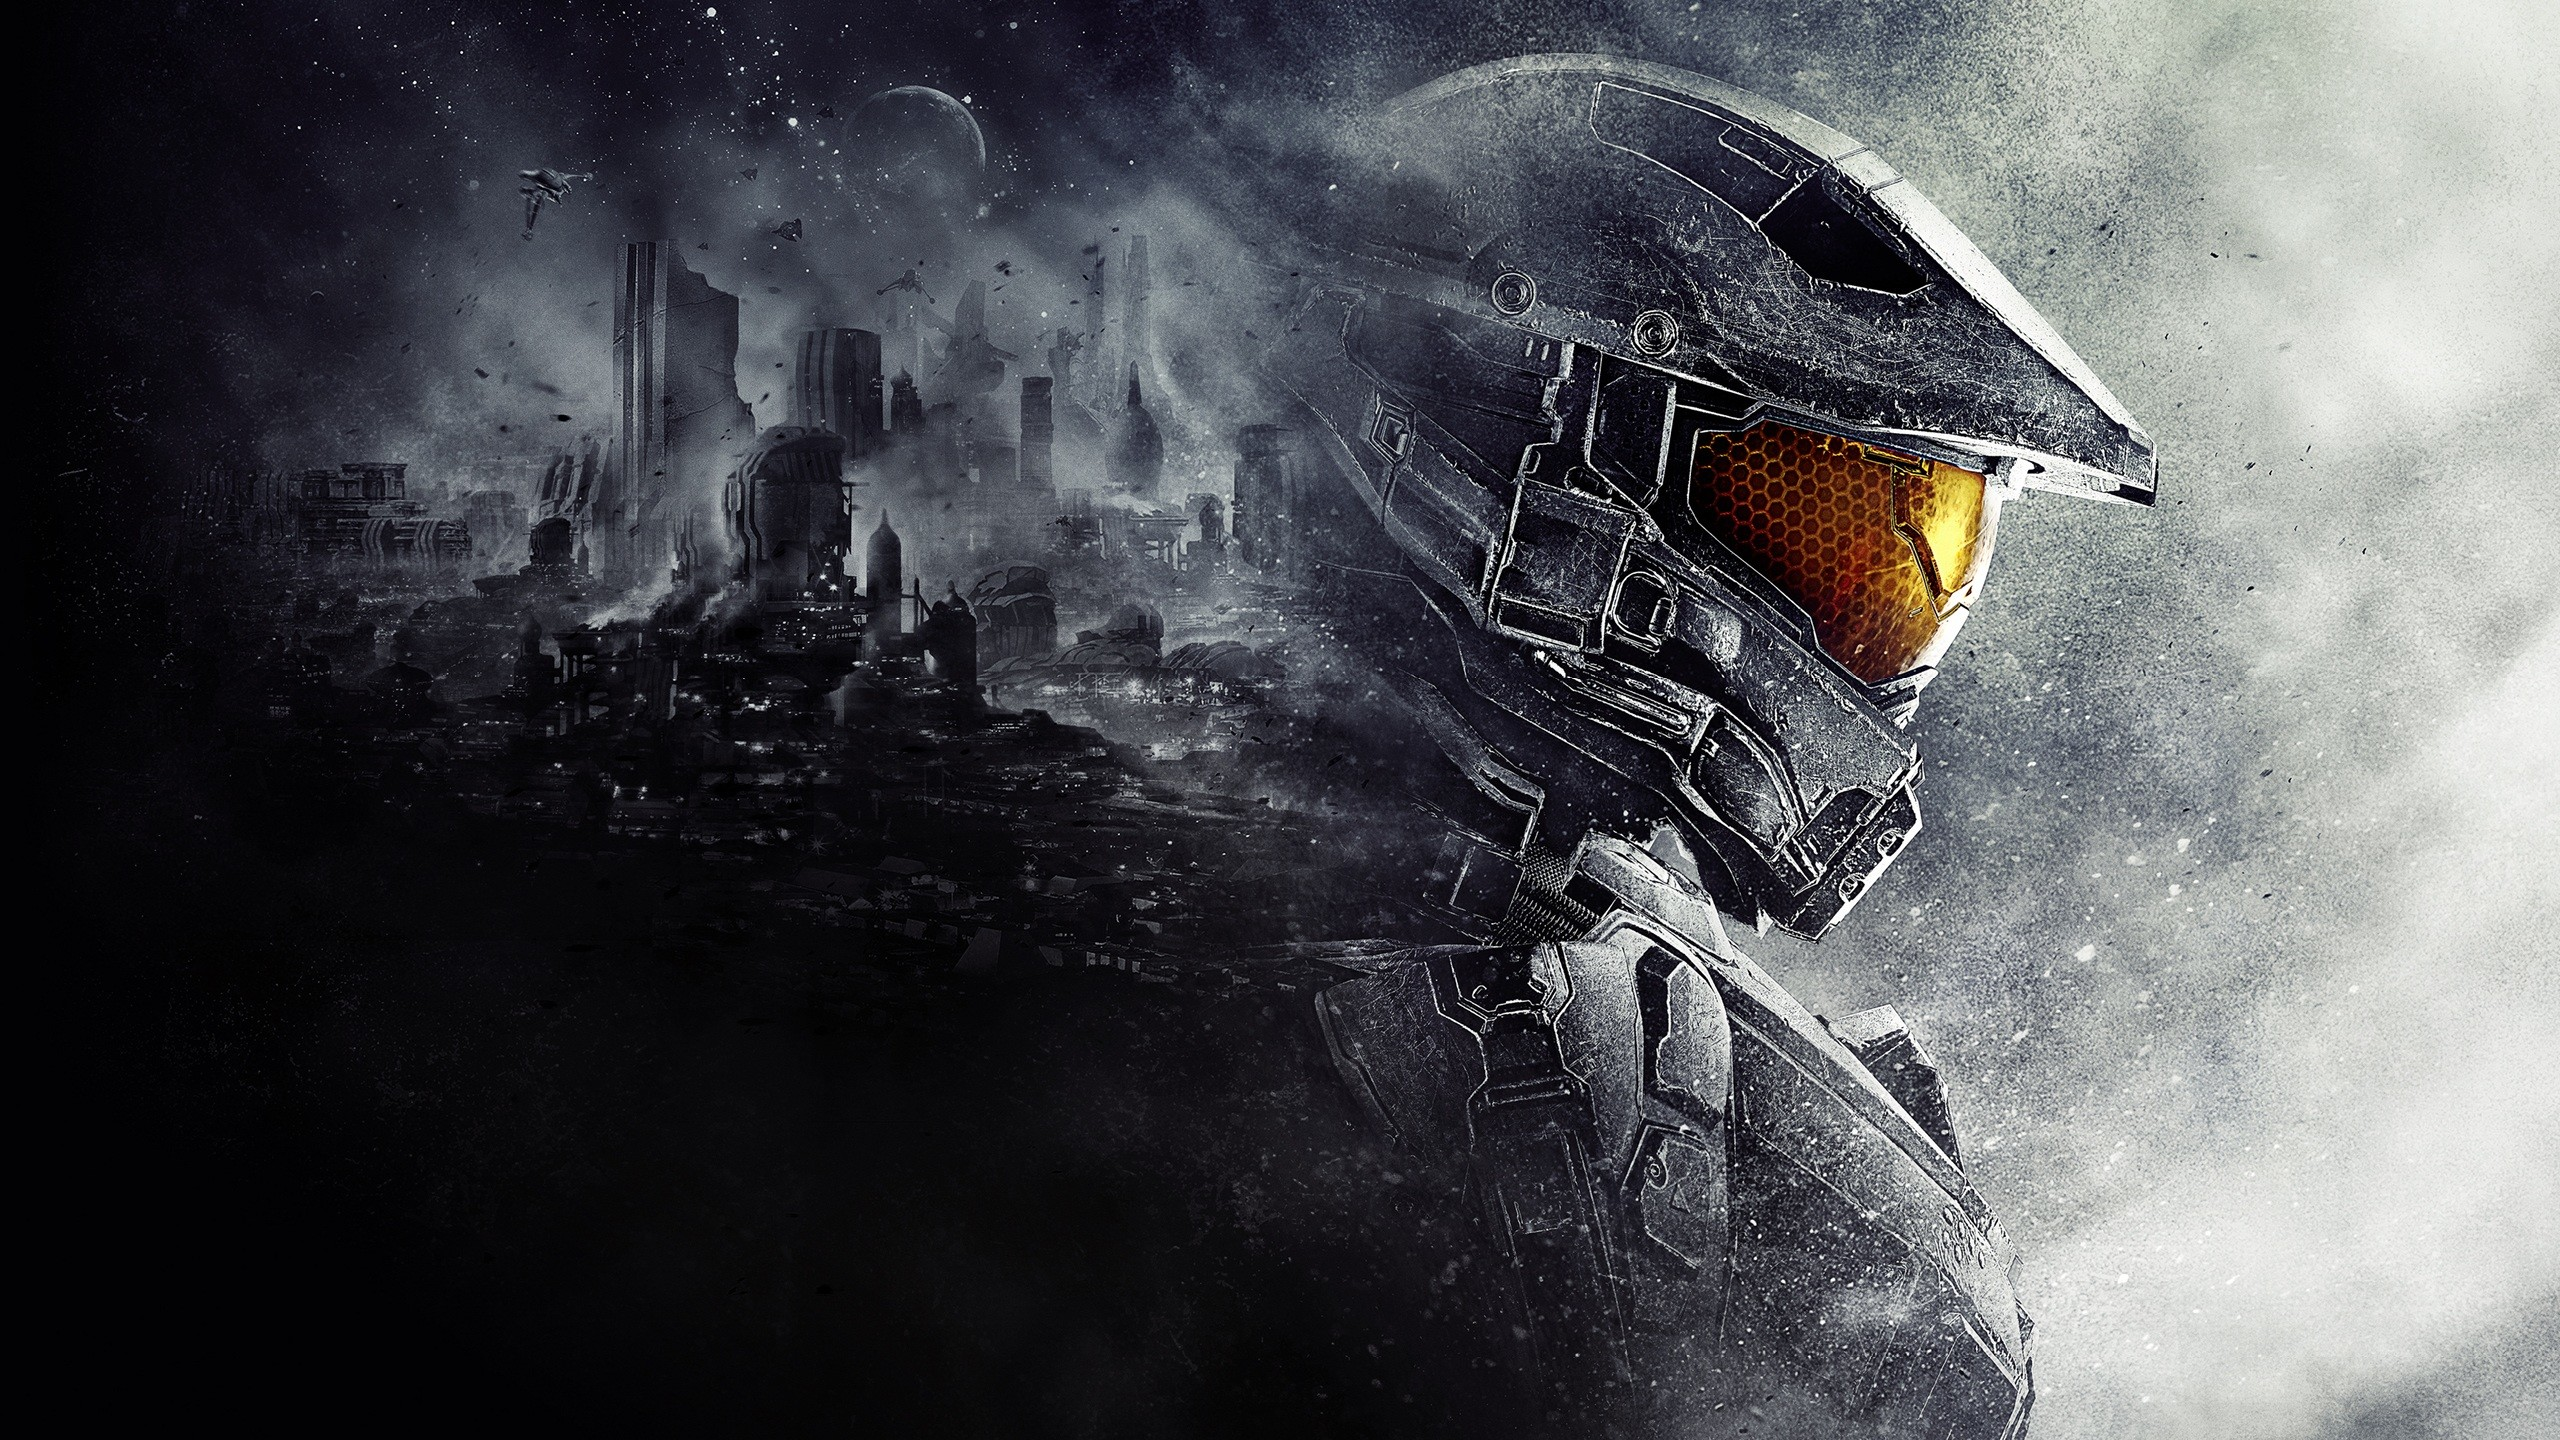 2560x1440 Collection Of Halo 5 Wallpaper On HDWallpapers